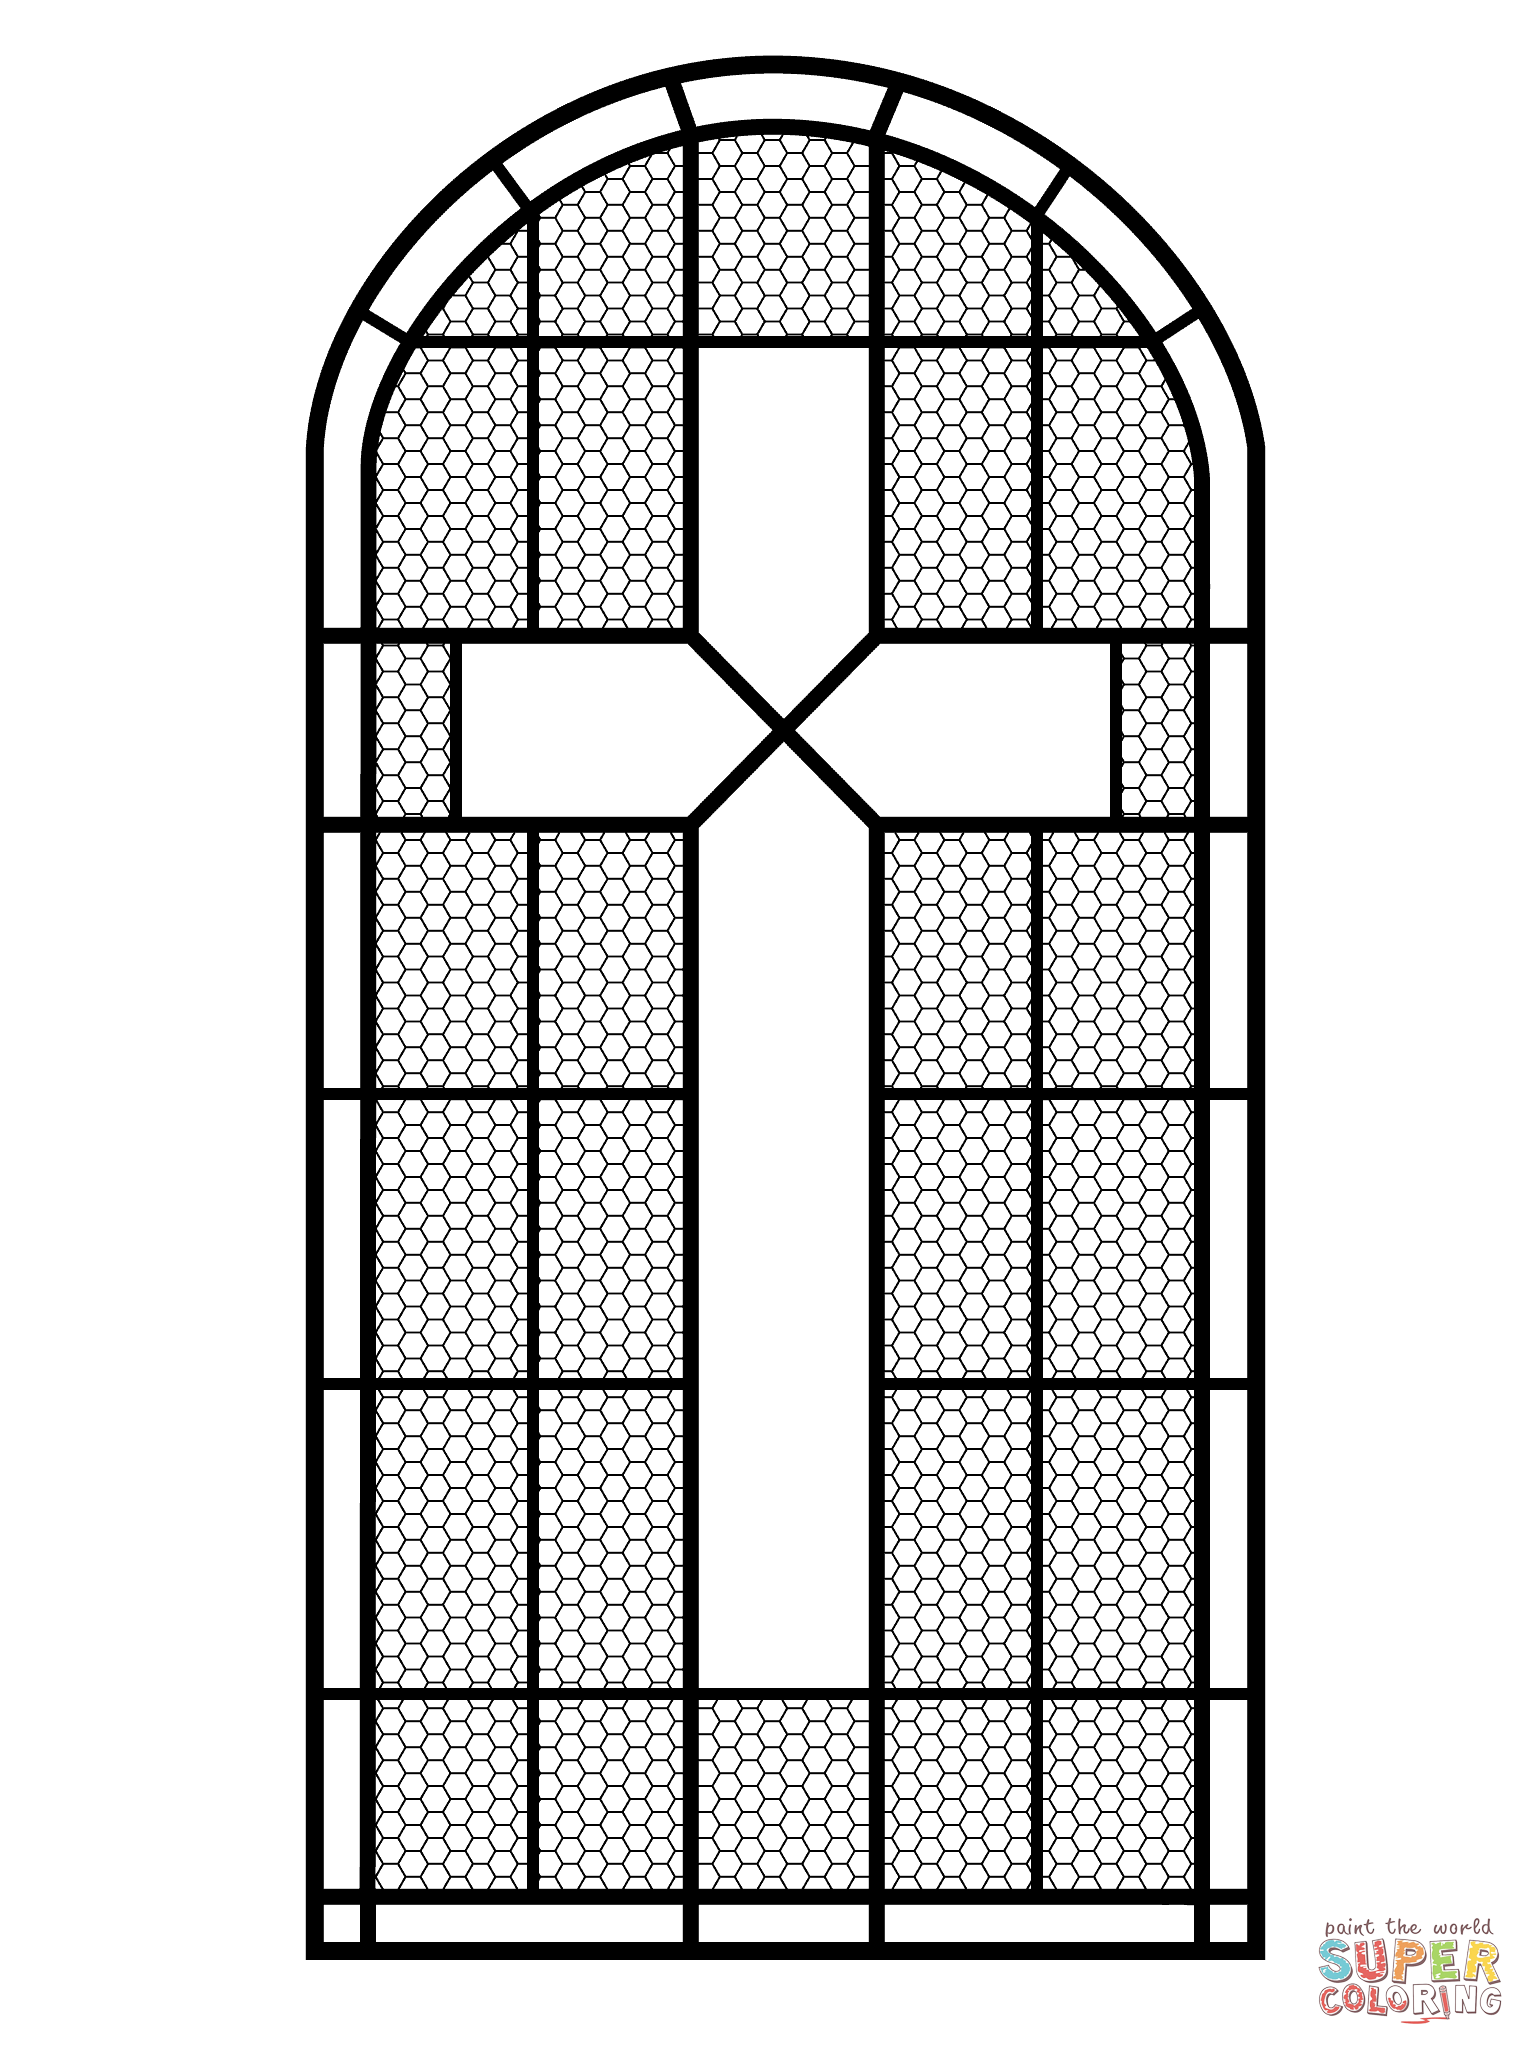 Cross Stained Glass Window Coloring Page From Stained Glass Category Select From 26977 Print Stain Glass Cross Stained Glass Patterns Free Stained Glass Quilt